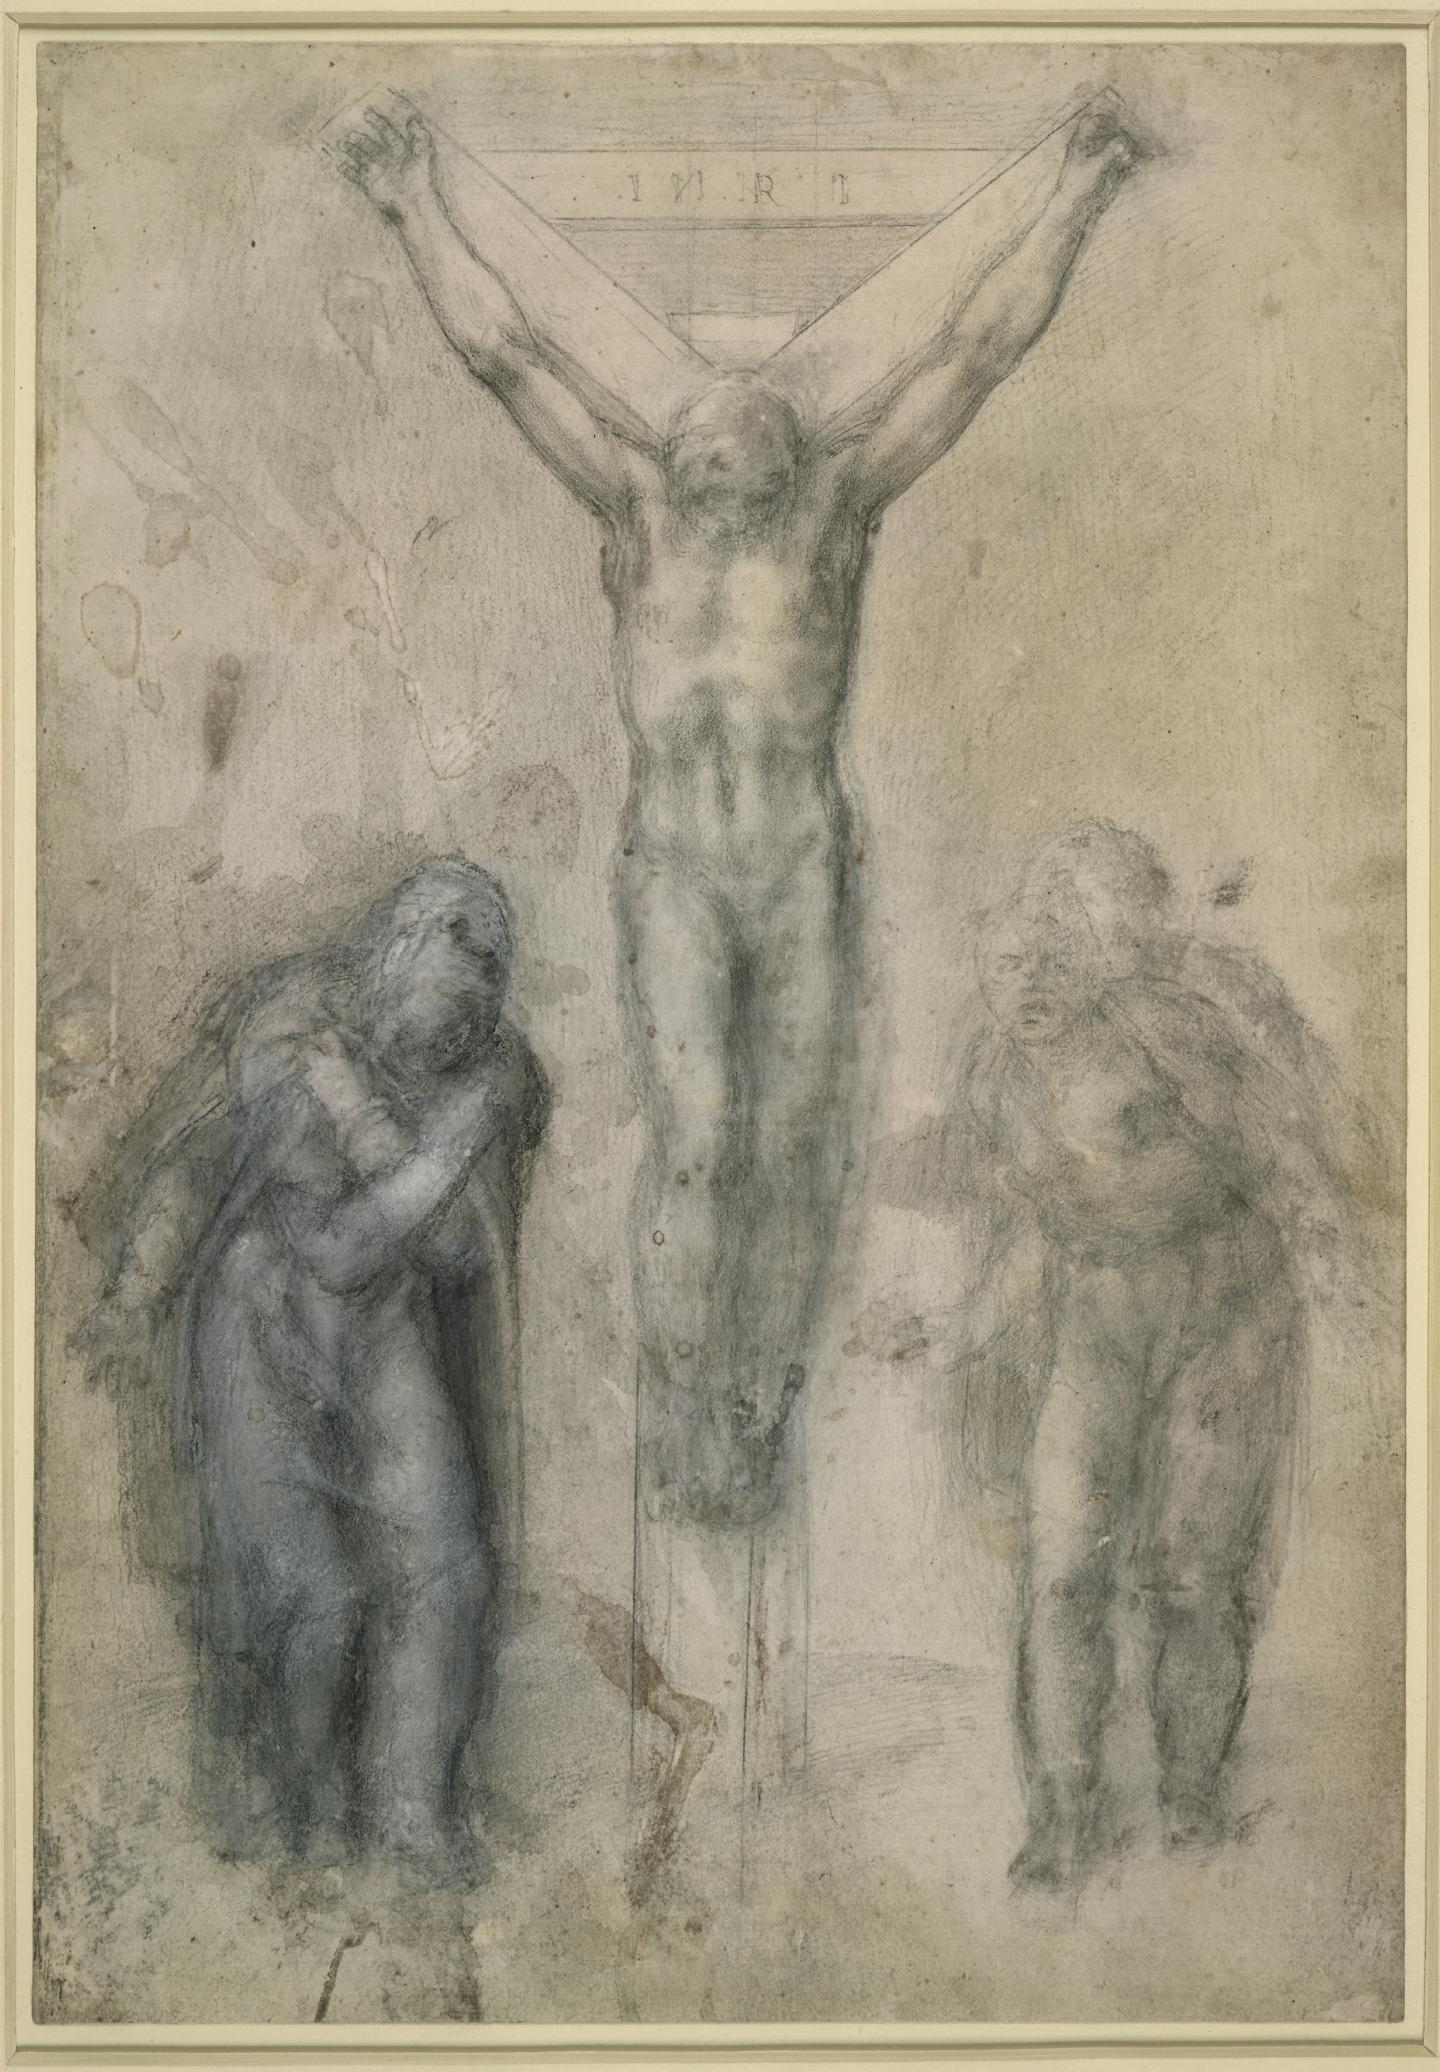 Michelangelo, Christ on the Cross Between the Virgin and St John, c.1555-1564, black chalk and white lead on paper, 41 x 29 cm. Courtesy: British Museum, London